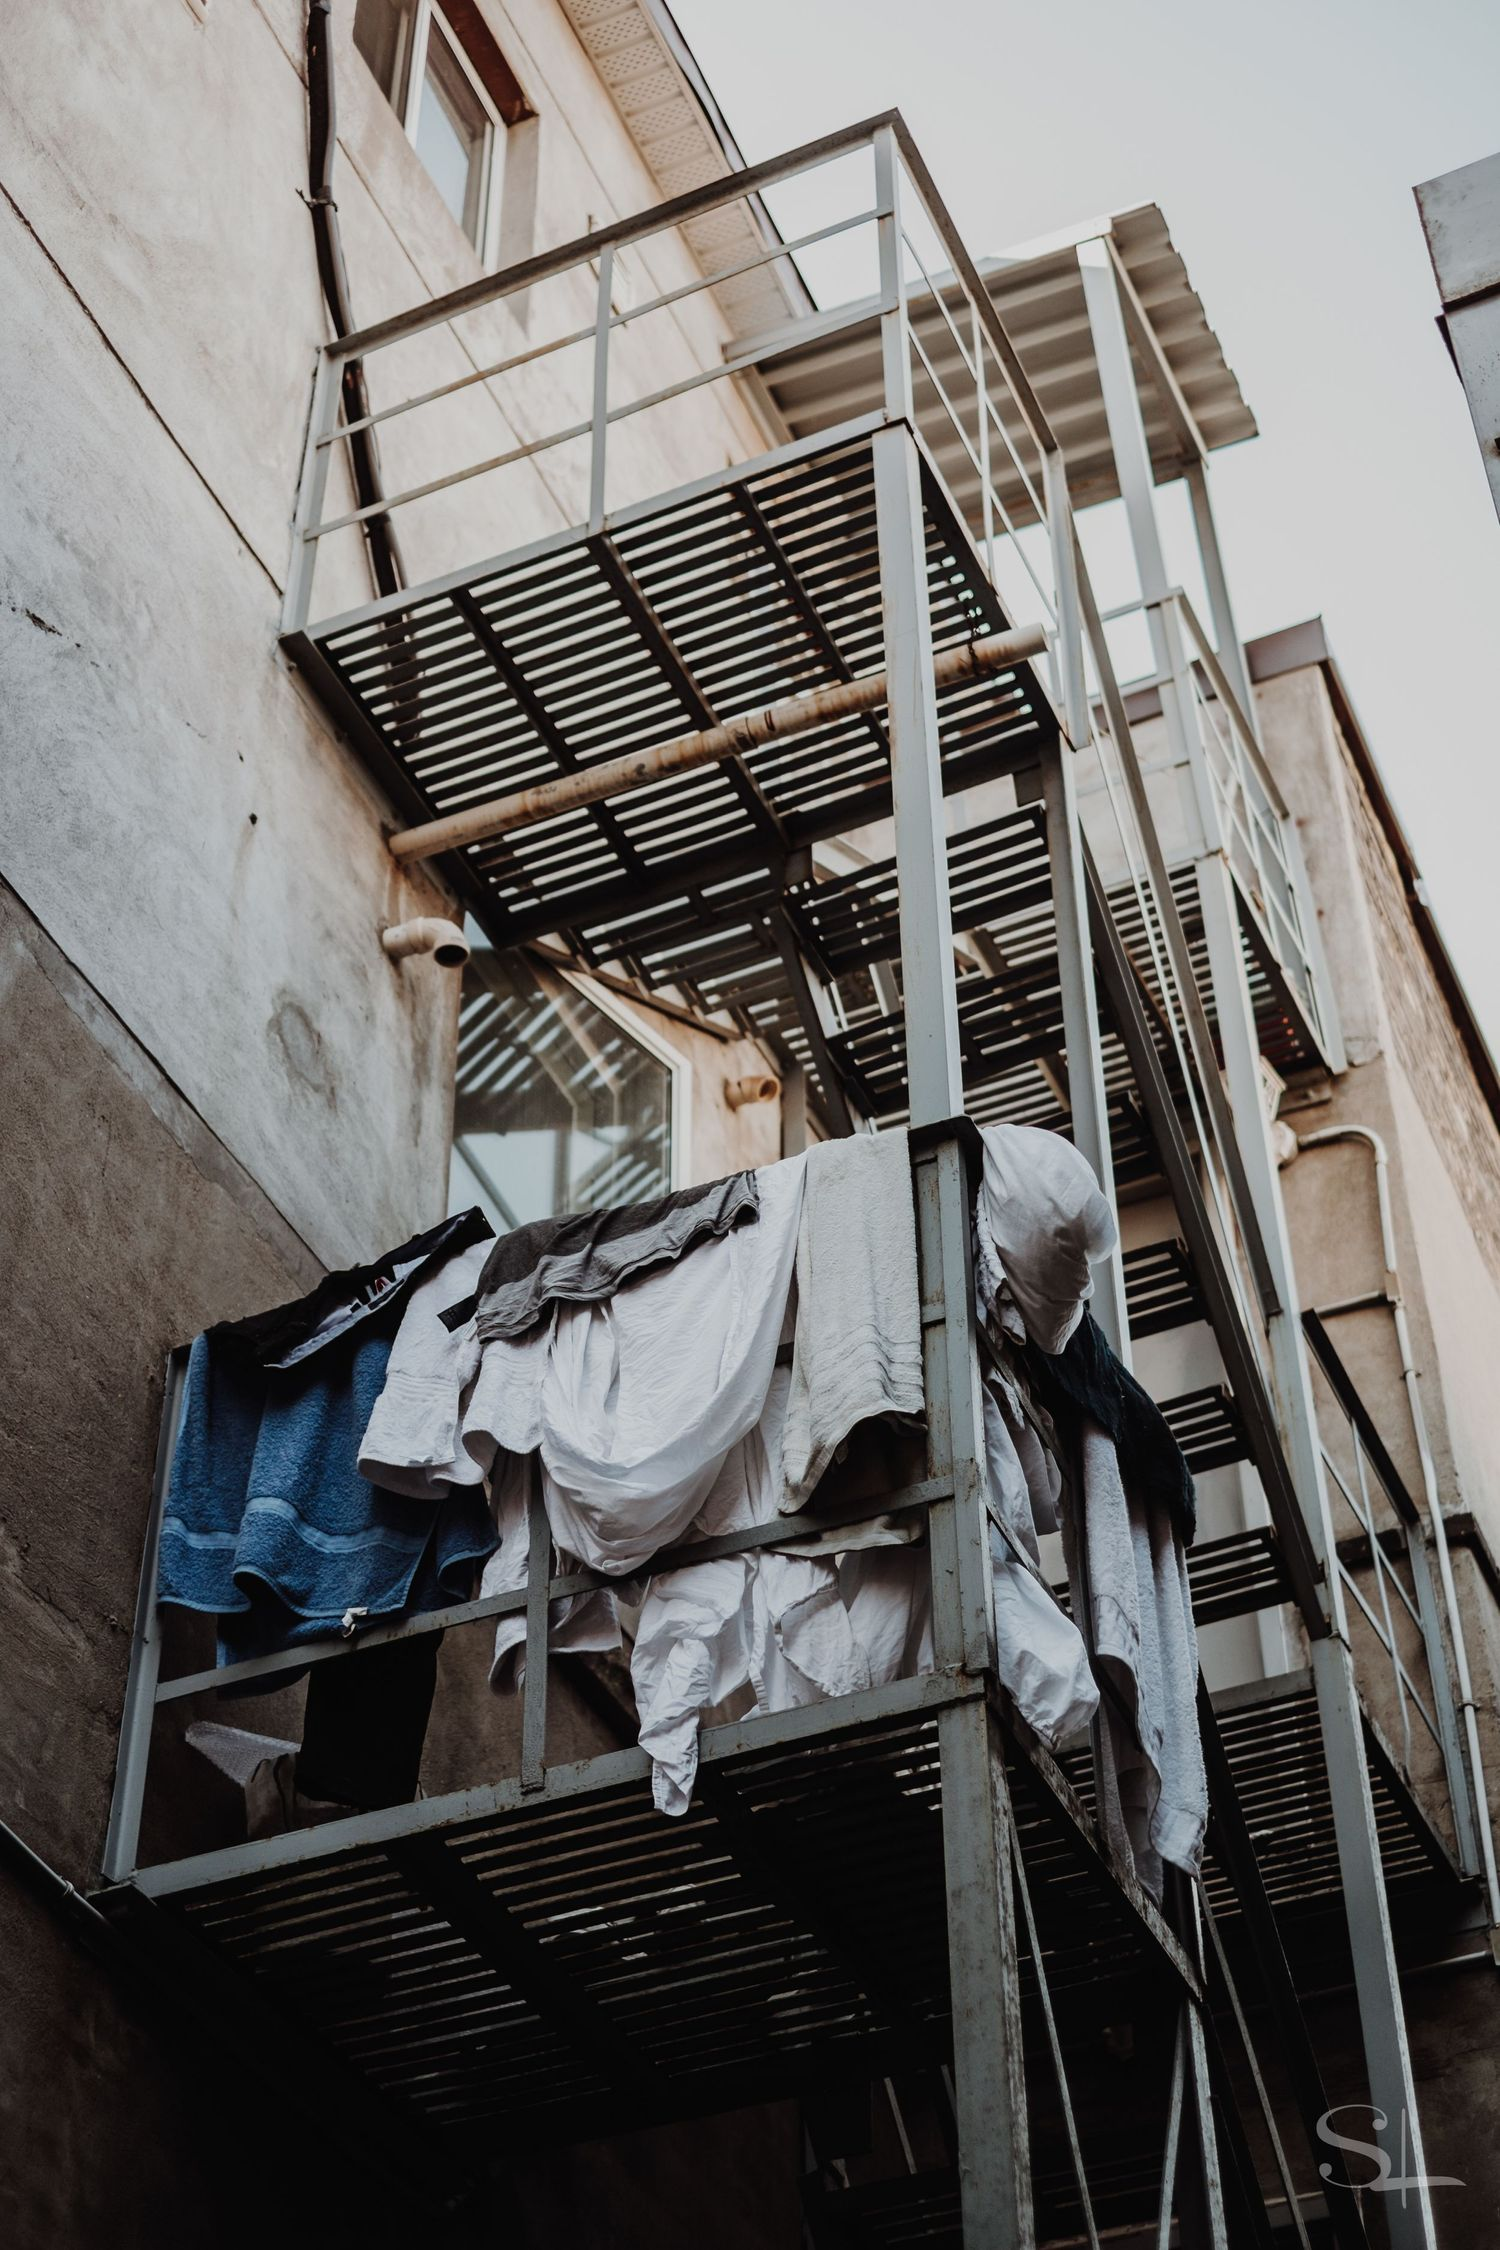 laundry hangs from a back alley fire exit